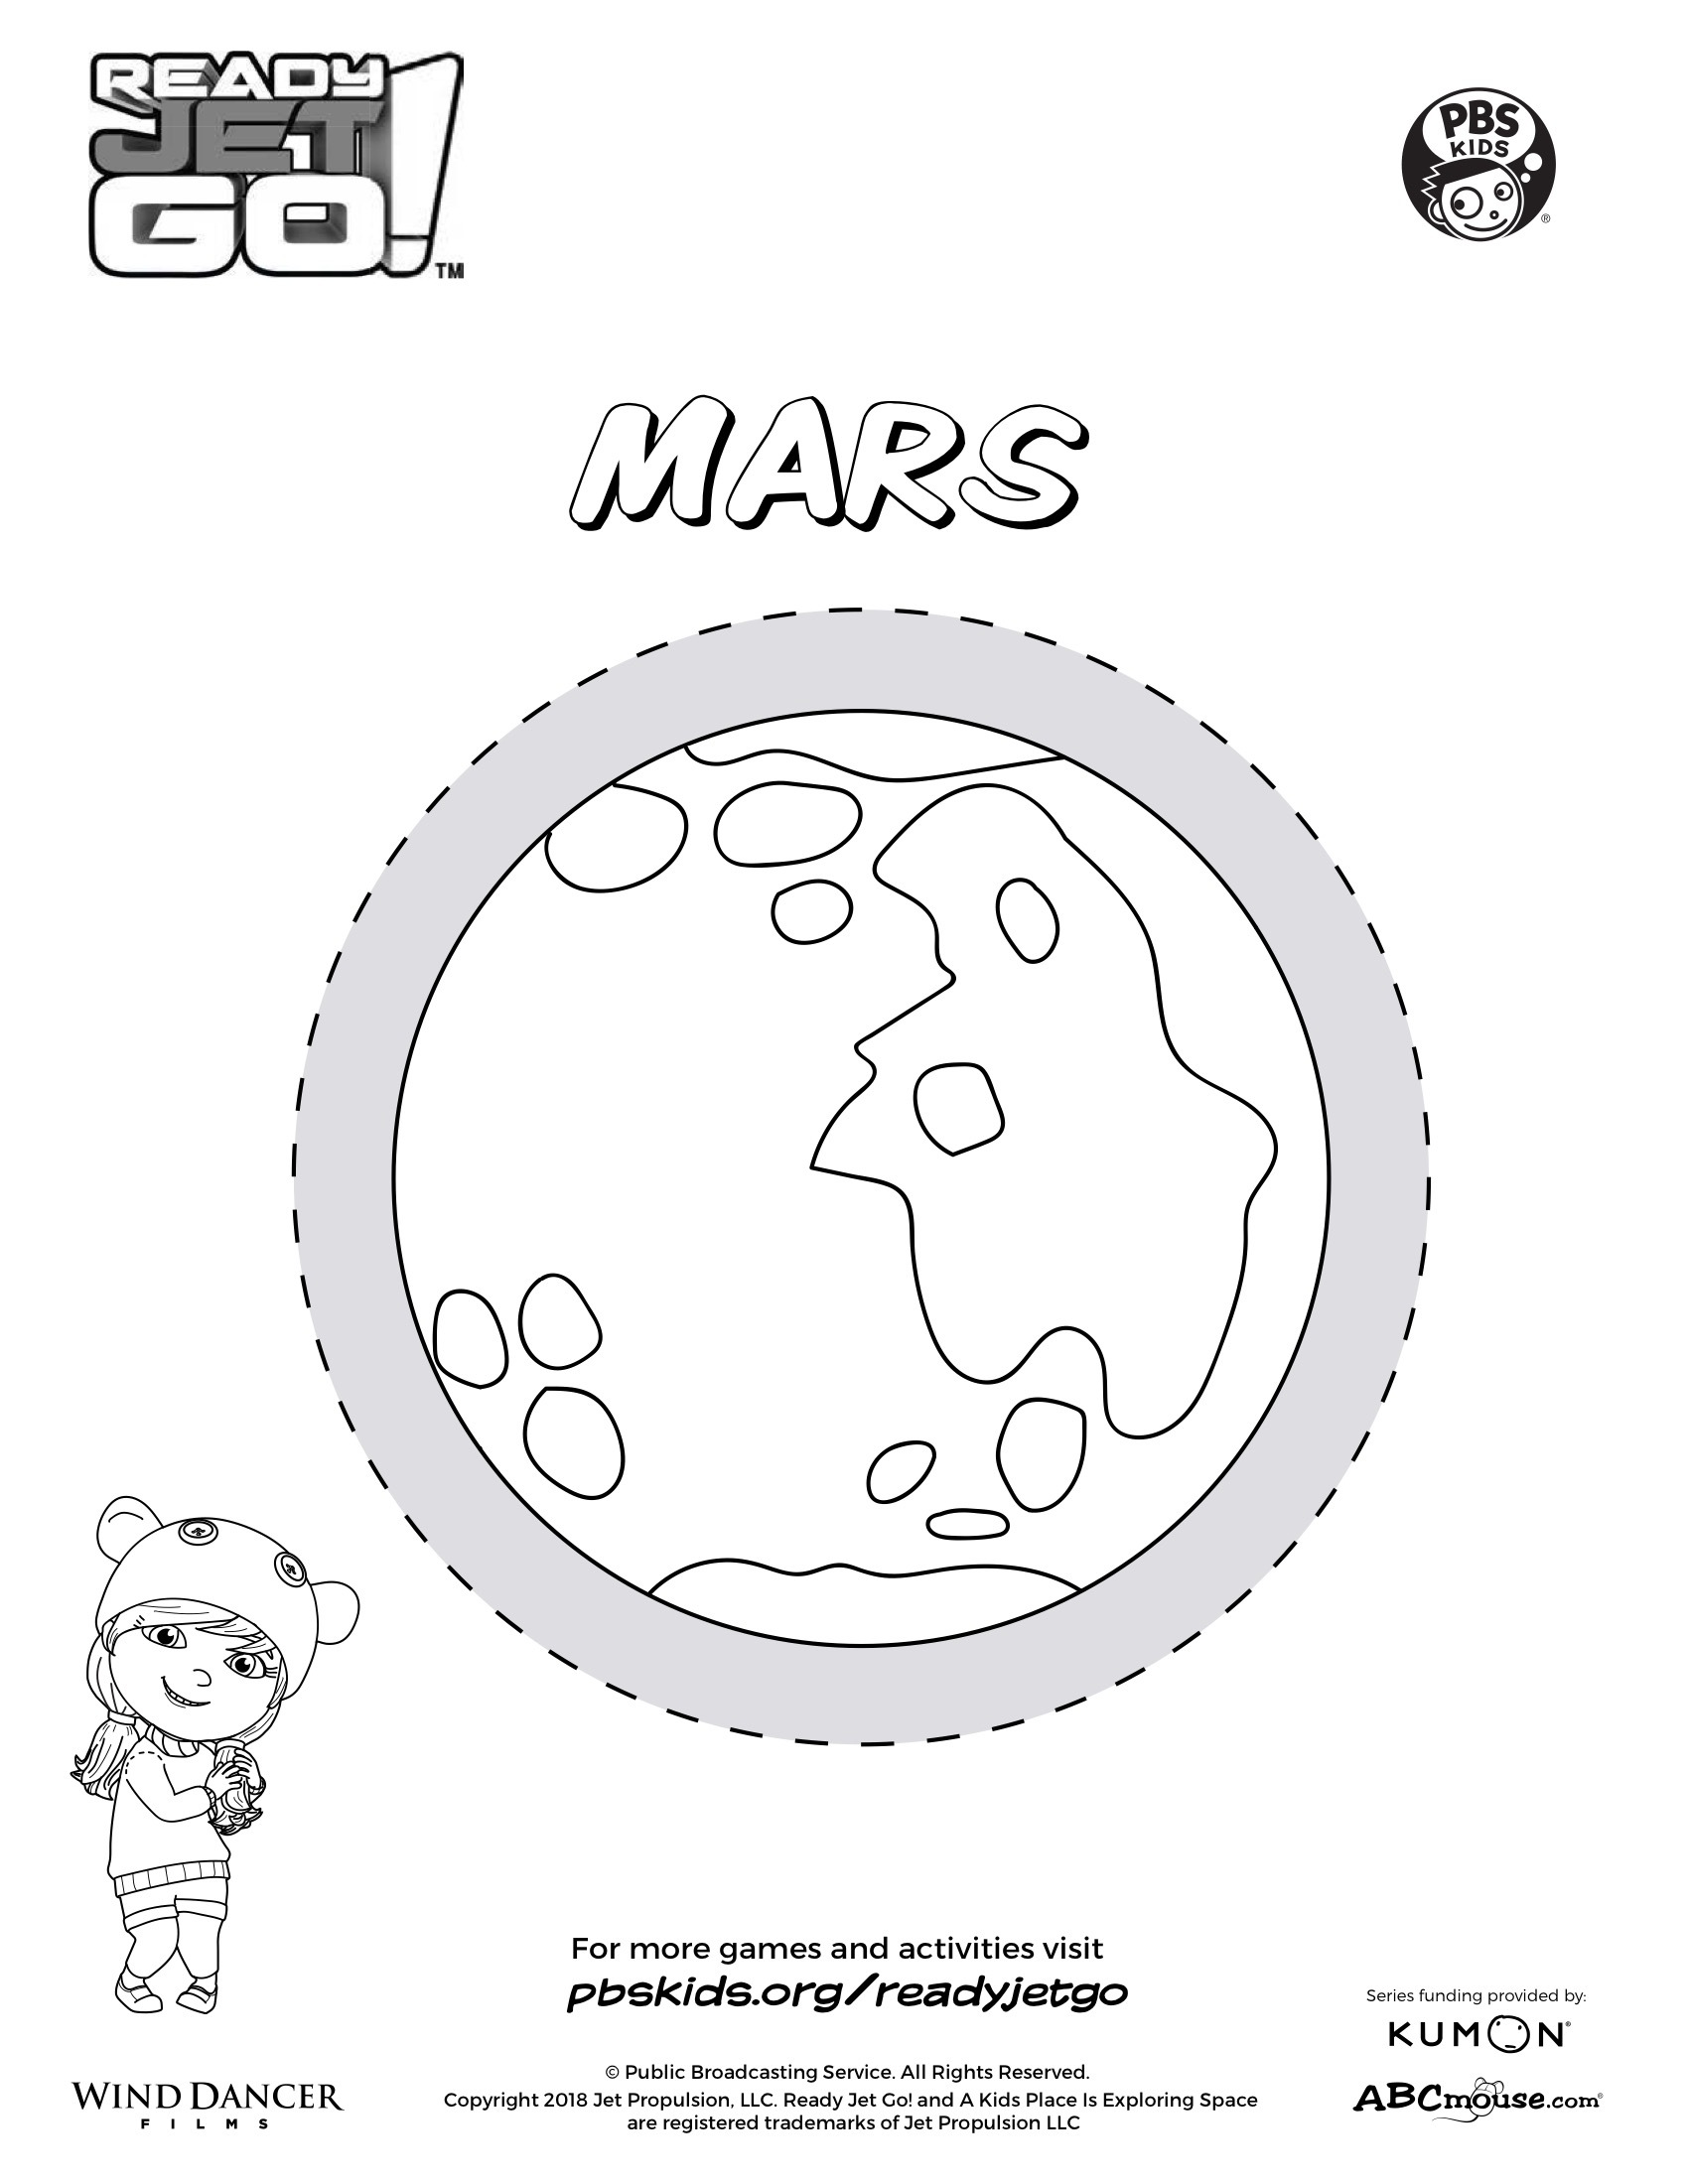 Planet Mars Coloring Page | Kids Coloring Pages | PBS KIDS for Parents